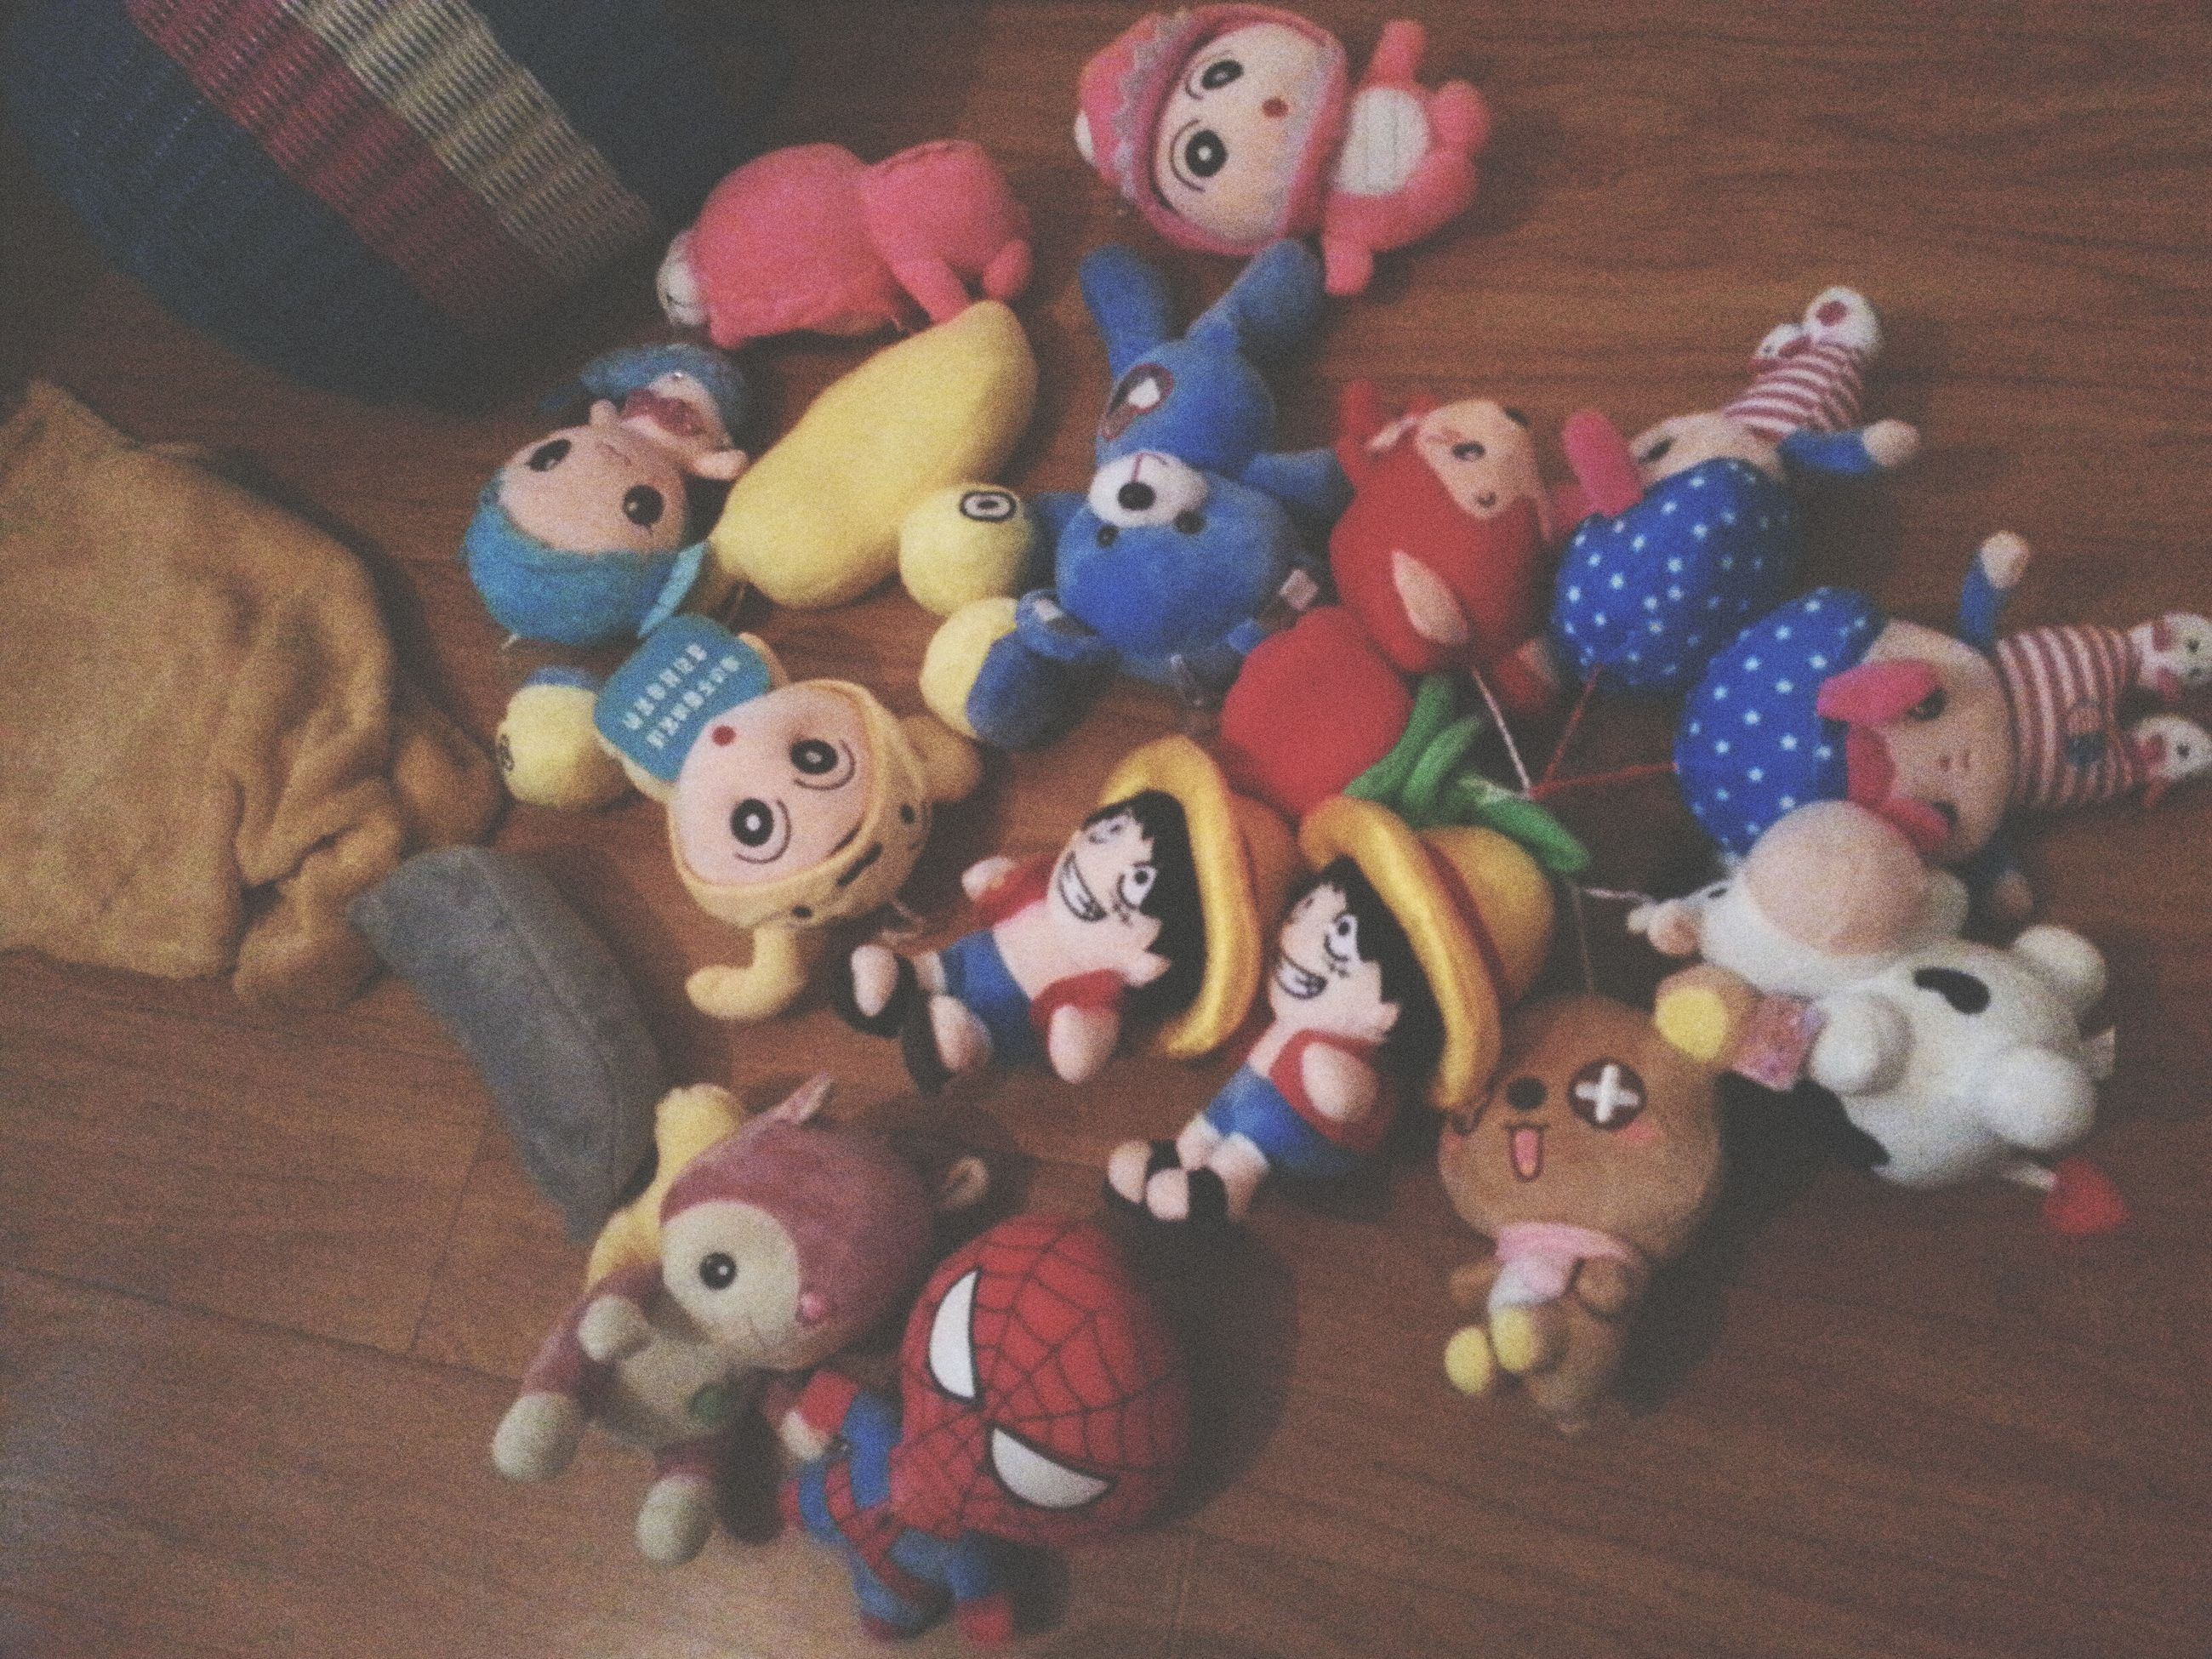 multi colored, toy, art and craft, animal representation, variation, creativity, art, childhood, human representation, high angle view, large group of objects, indoors, still life, stuffed toy, abundance, choice, decoration, no people, close-up, figurine